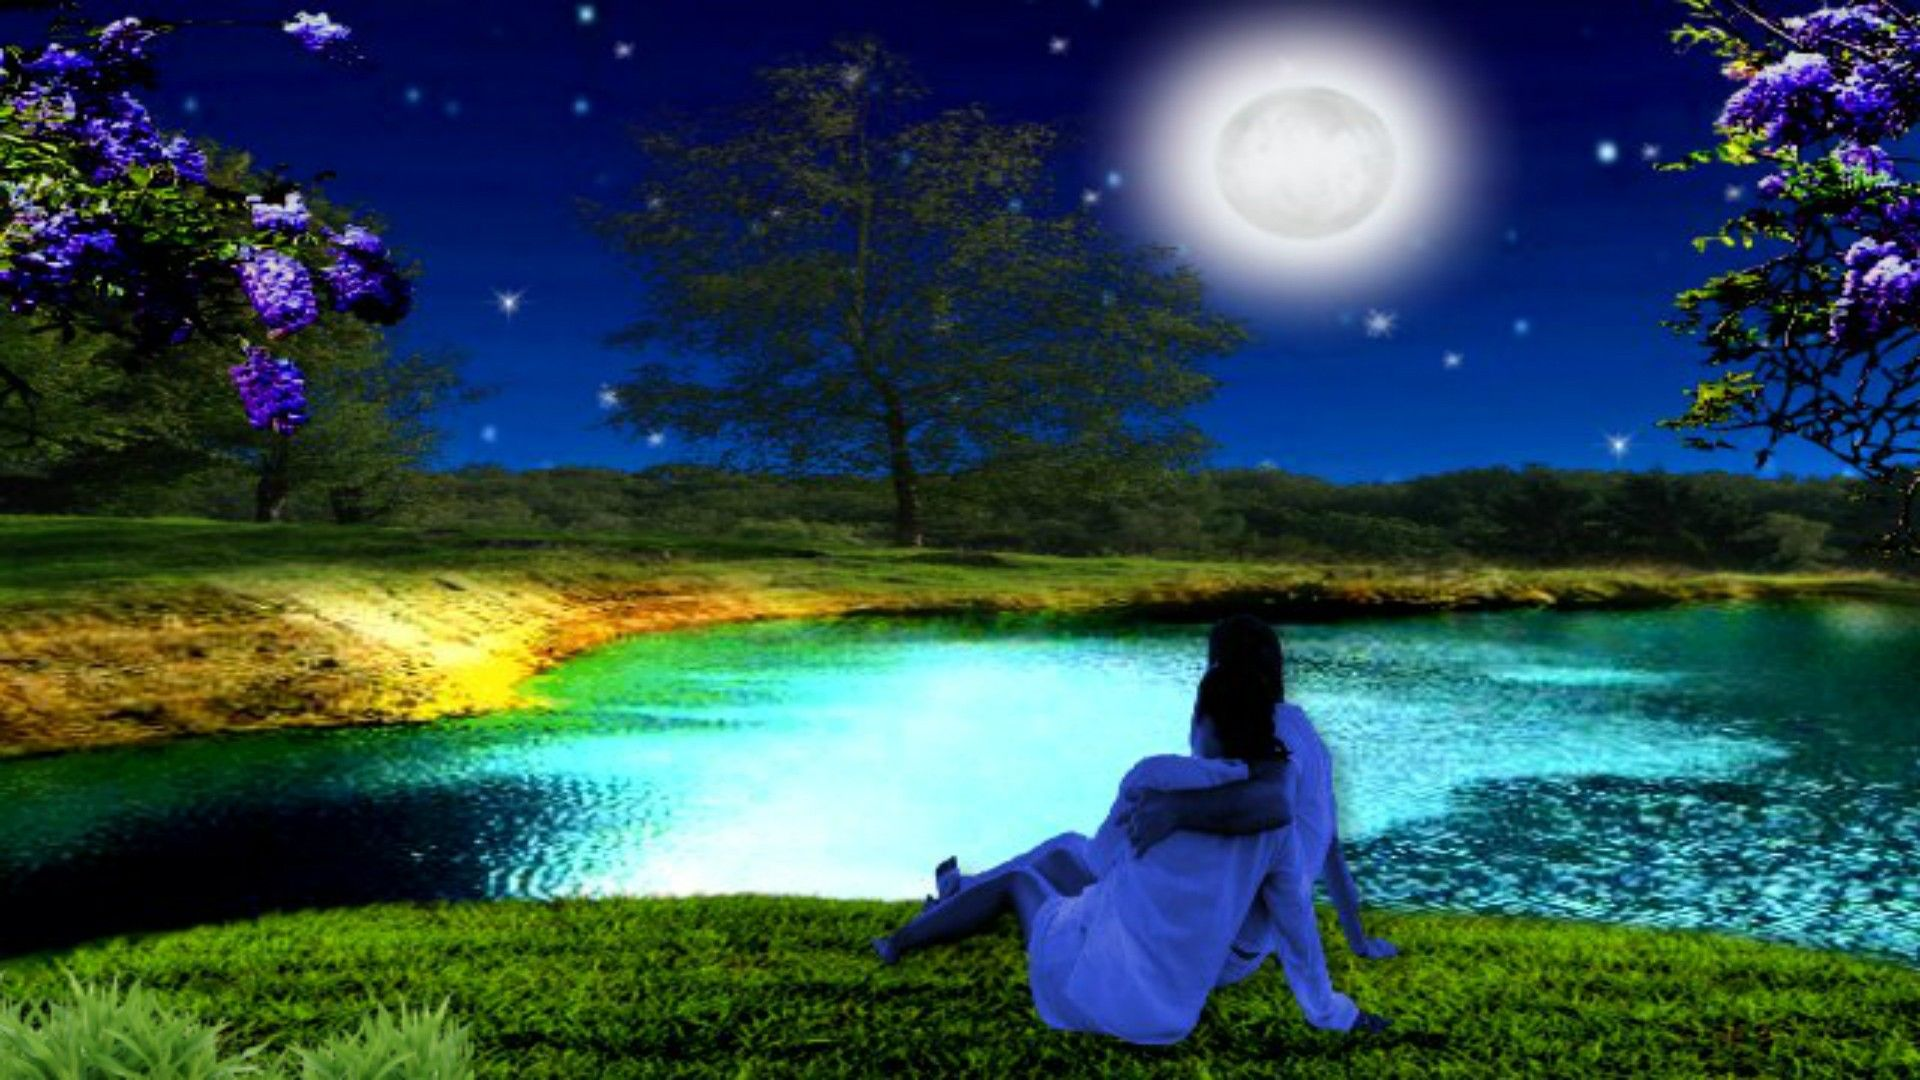 Romantic Night Lake couple Full Moon Magic Nature HD Desktop ???? -MOON Pinterest Moon ...